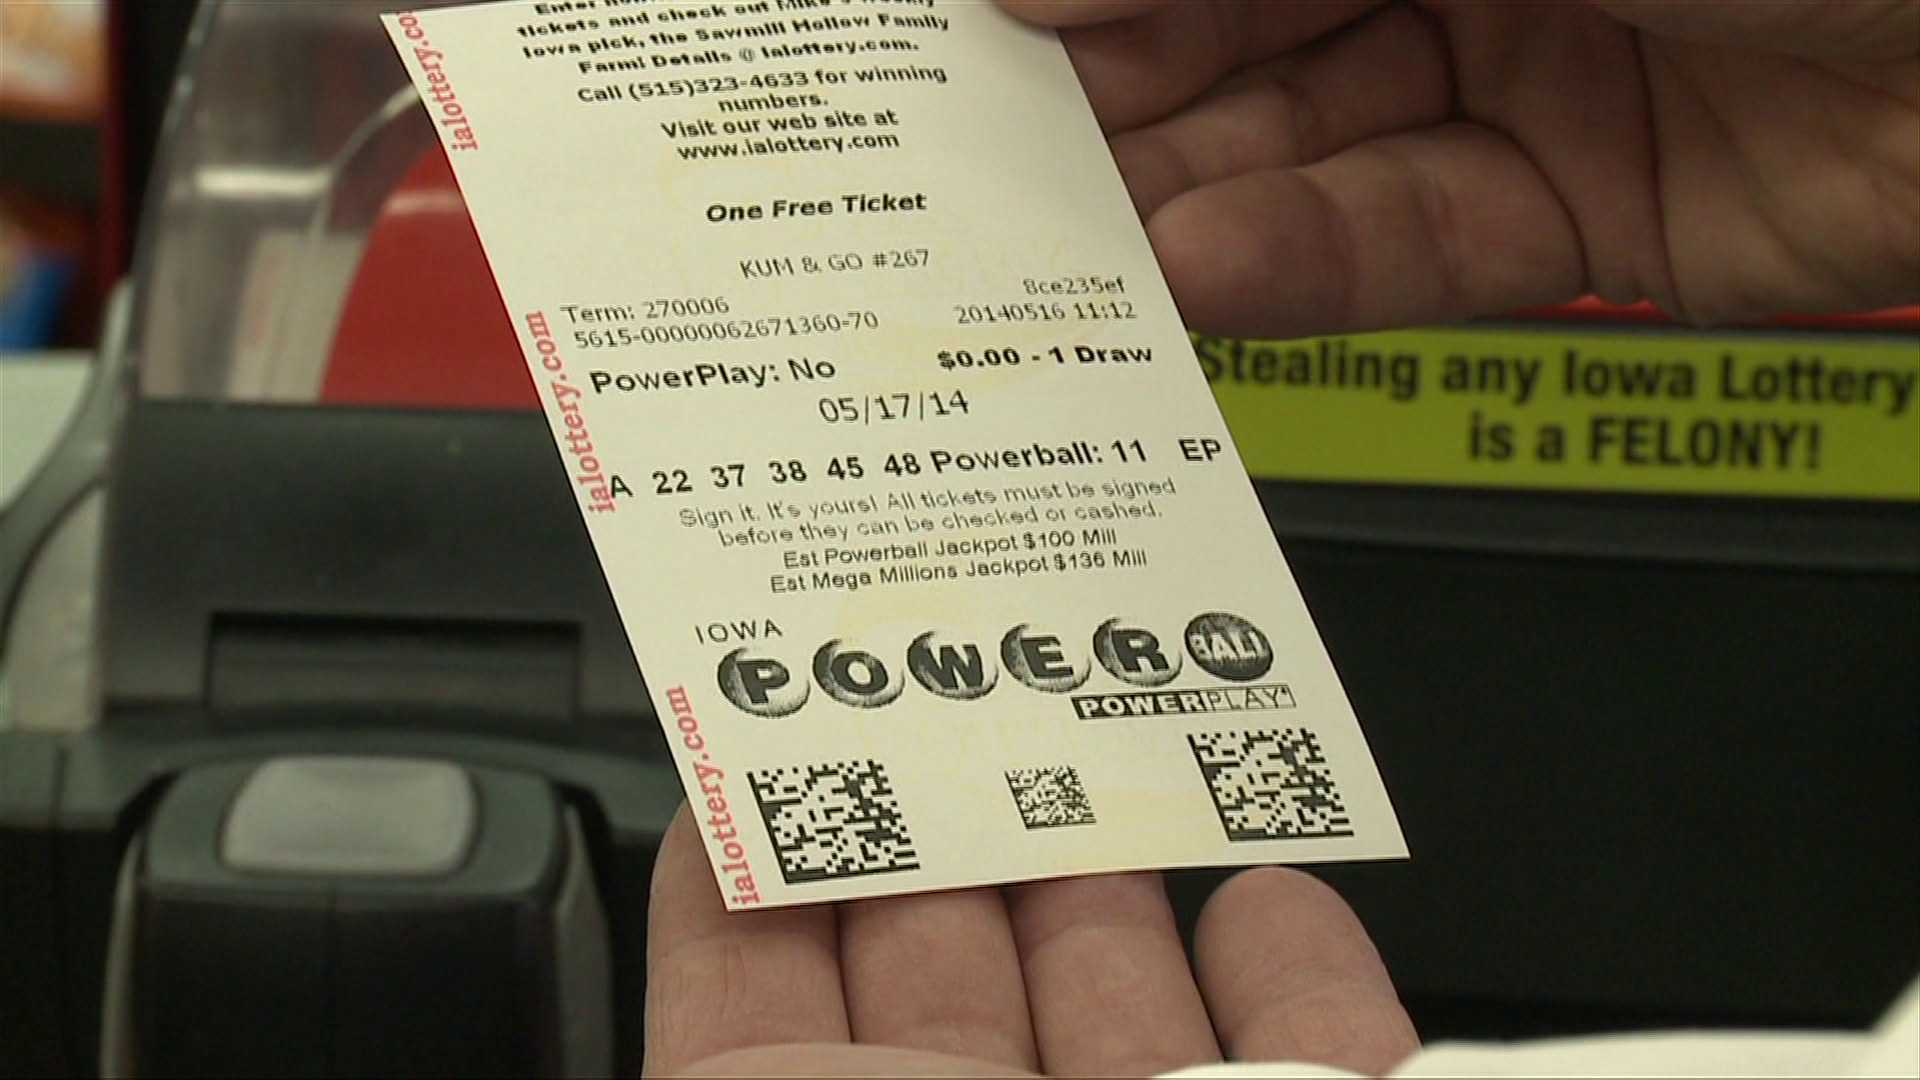 Ticket der Powerball Lotterie